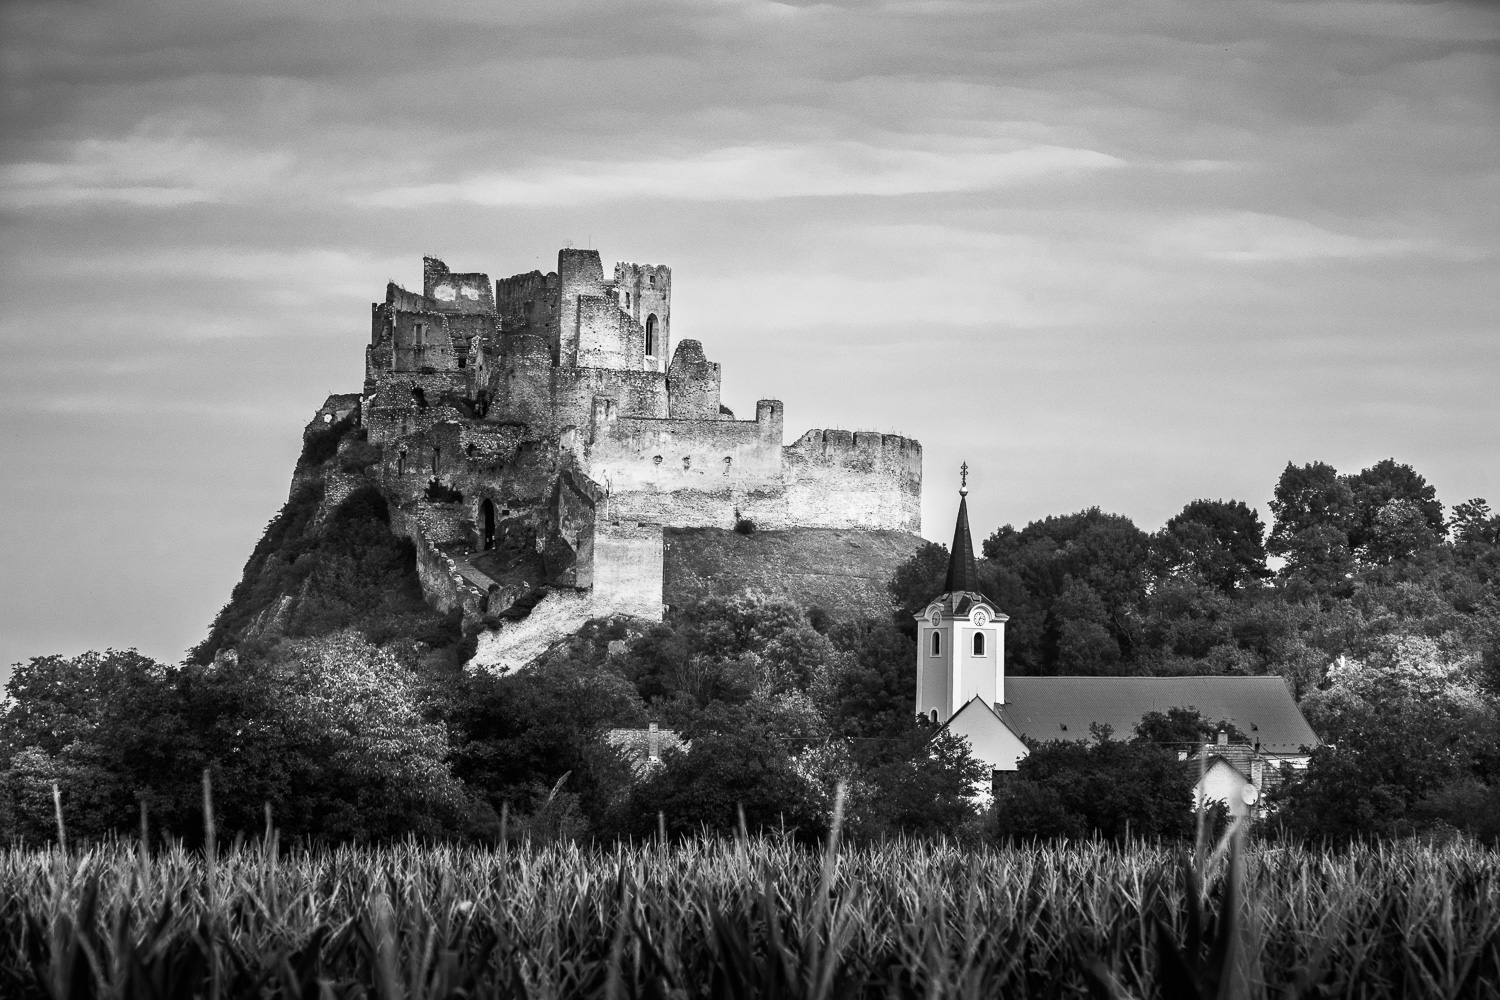 Beckov Castle.As in the previous image, the light was extremely flat and I did my best to bring out some shape out of the subject.